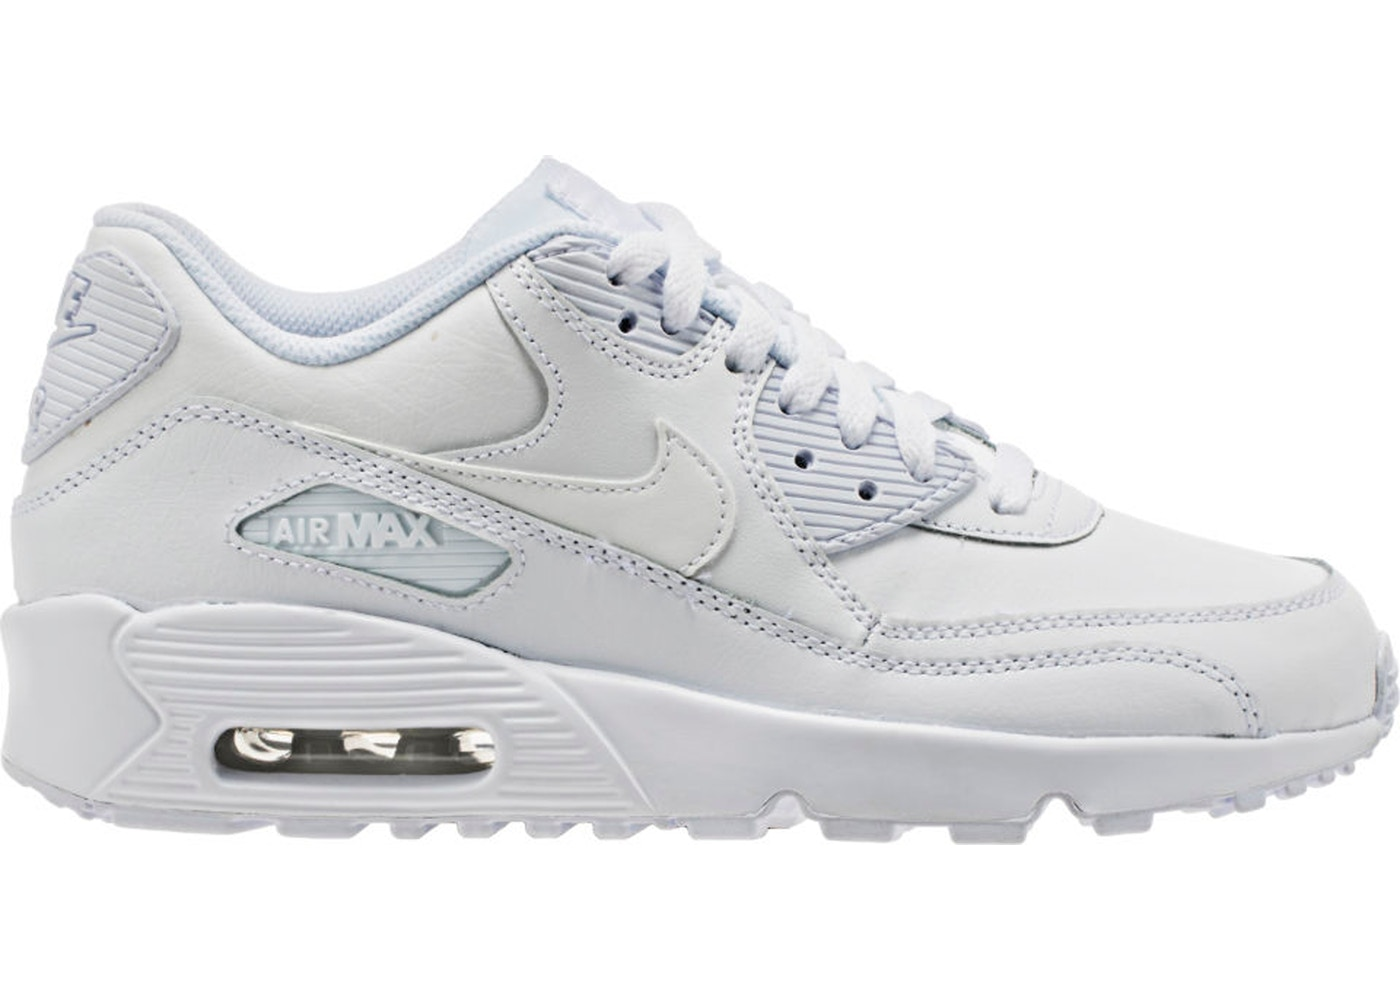 brand new dbf3a 64e40 Sell. or Ask. Size: 6Y. View All Bids. Air Max 90 White Leather (GS)